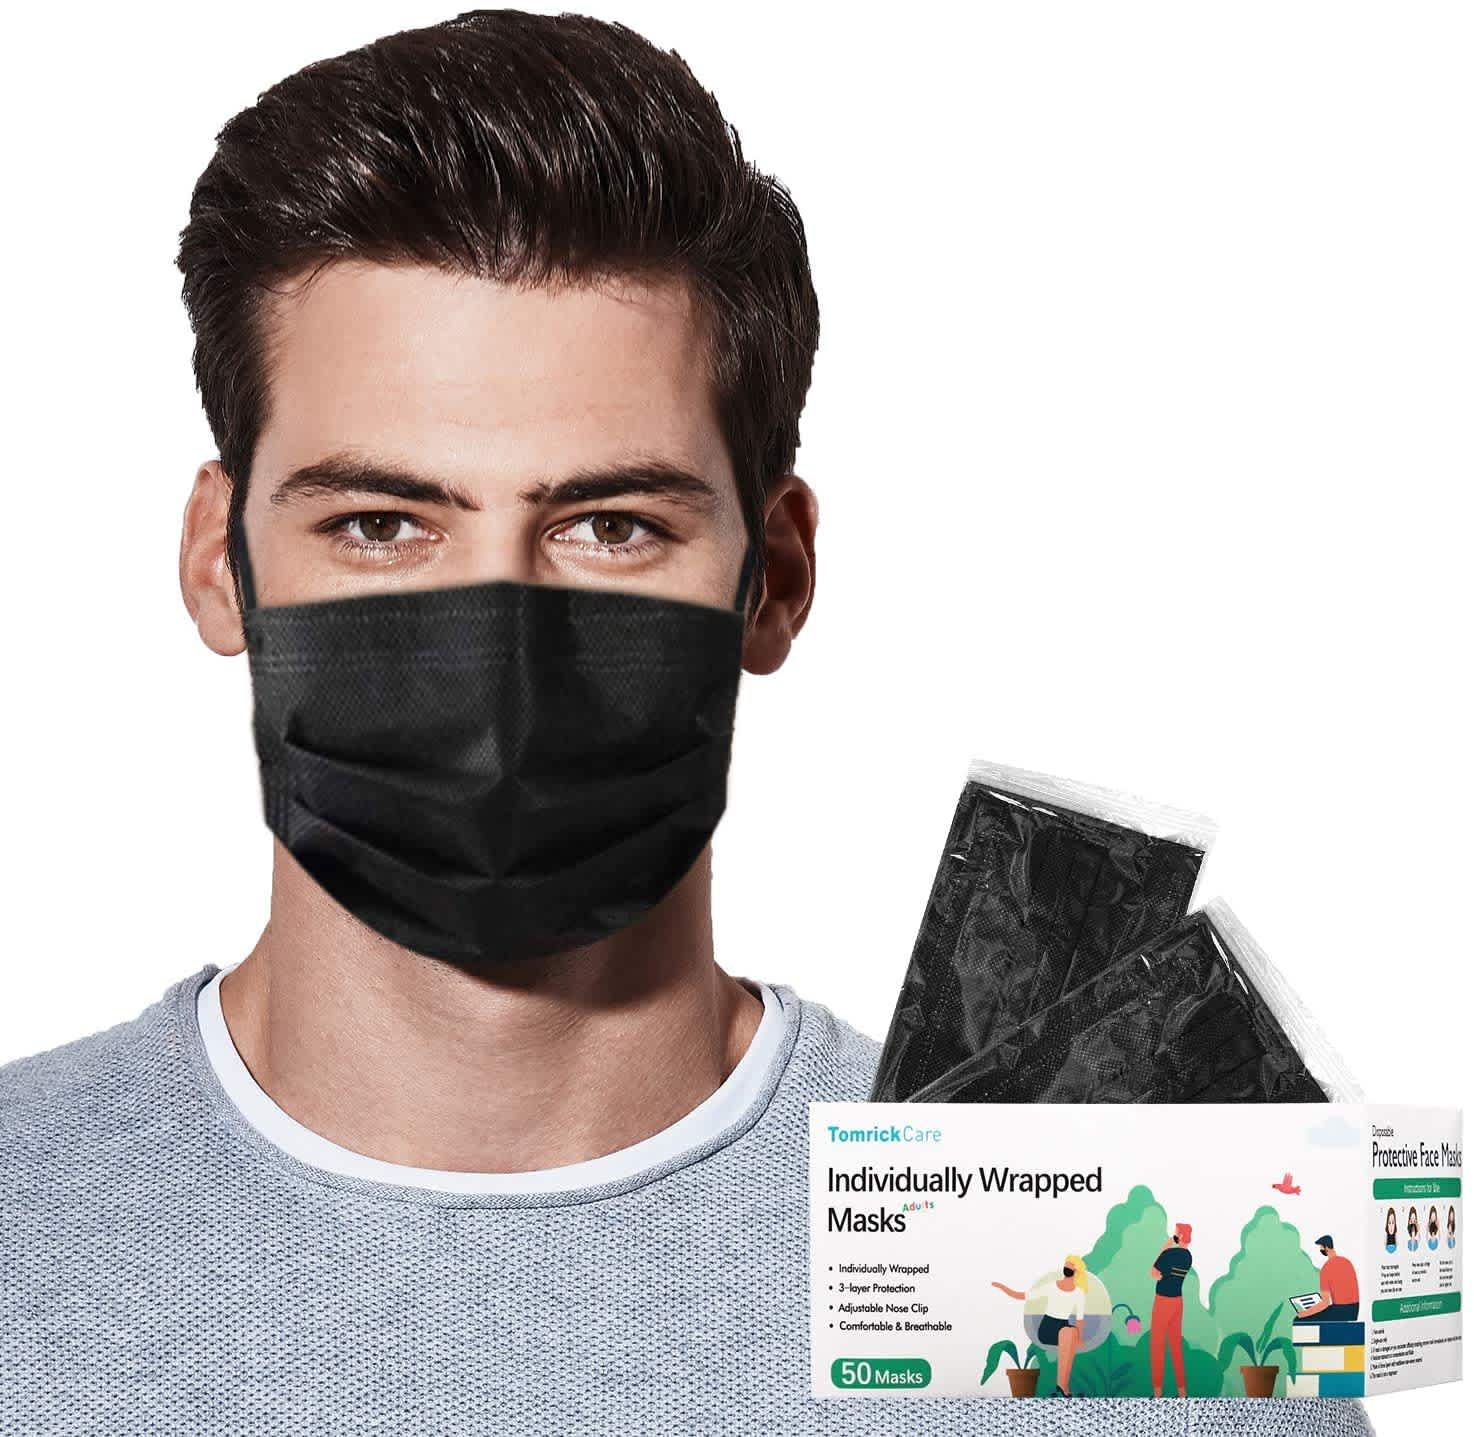 50 TomrickCare Individually Wrapped Adult Disposable Face Masks